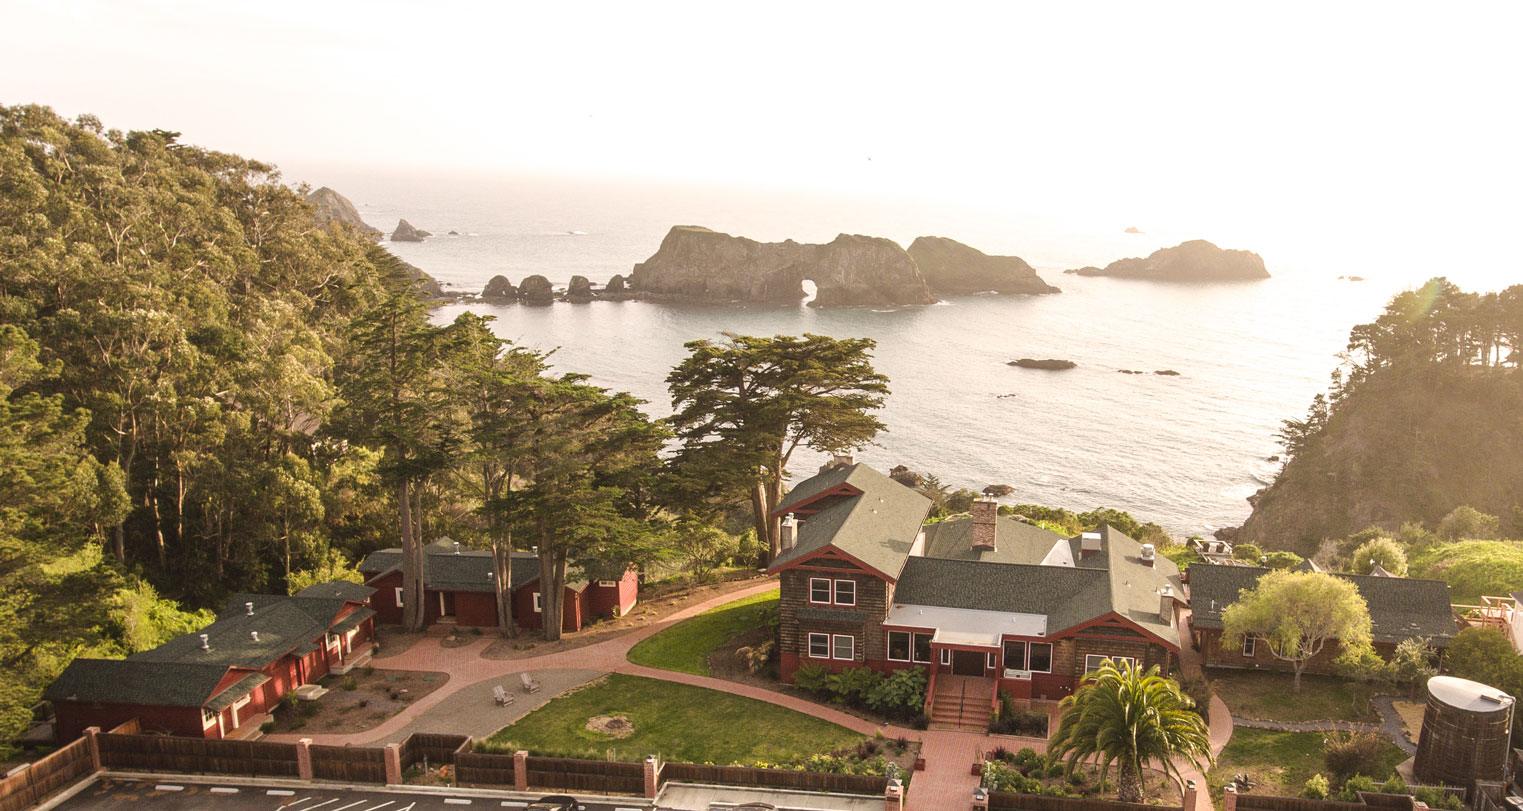 Harbor House Inn in Elk California sits on a bluff above the Pacific Ocean